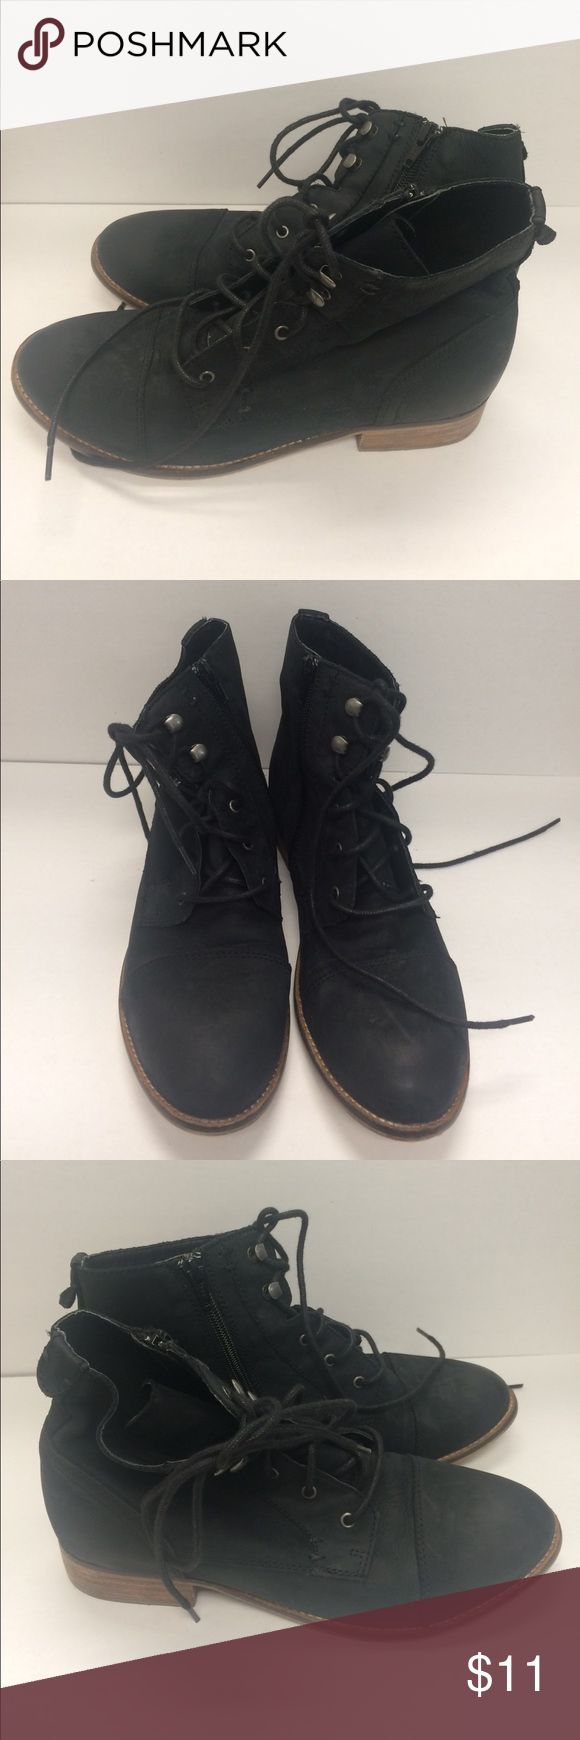 Women's Steve Madden Gobbin black boots Black leather. Lace up. Zipper. Pre-owned. Super comfortable a lot of life left Steve Madden Shoes Ankle Boots & Booties